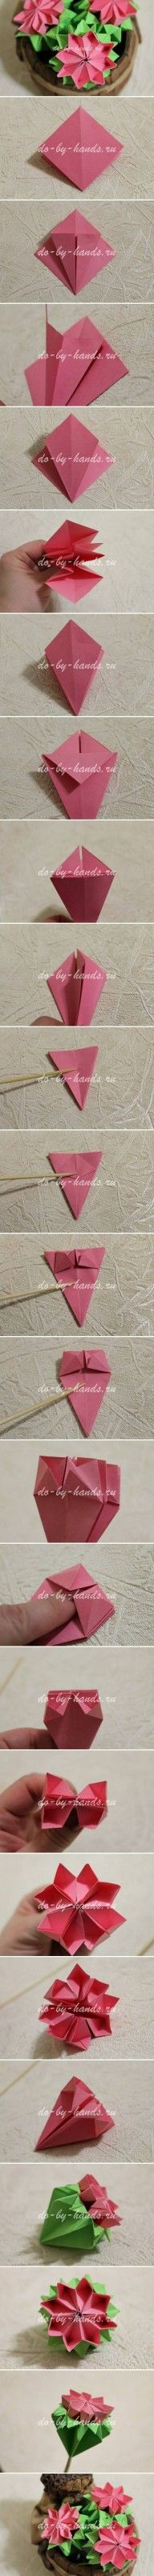 Origami , many posts from different people with origami instructions